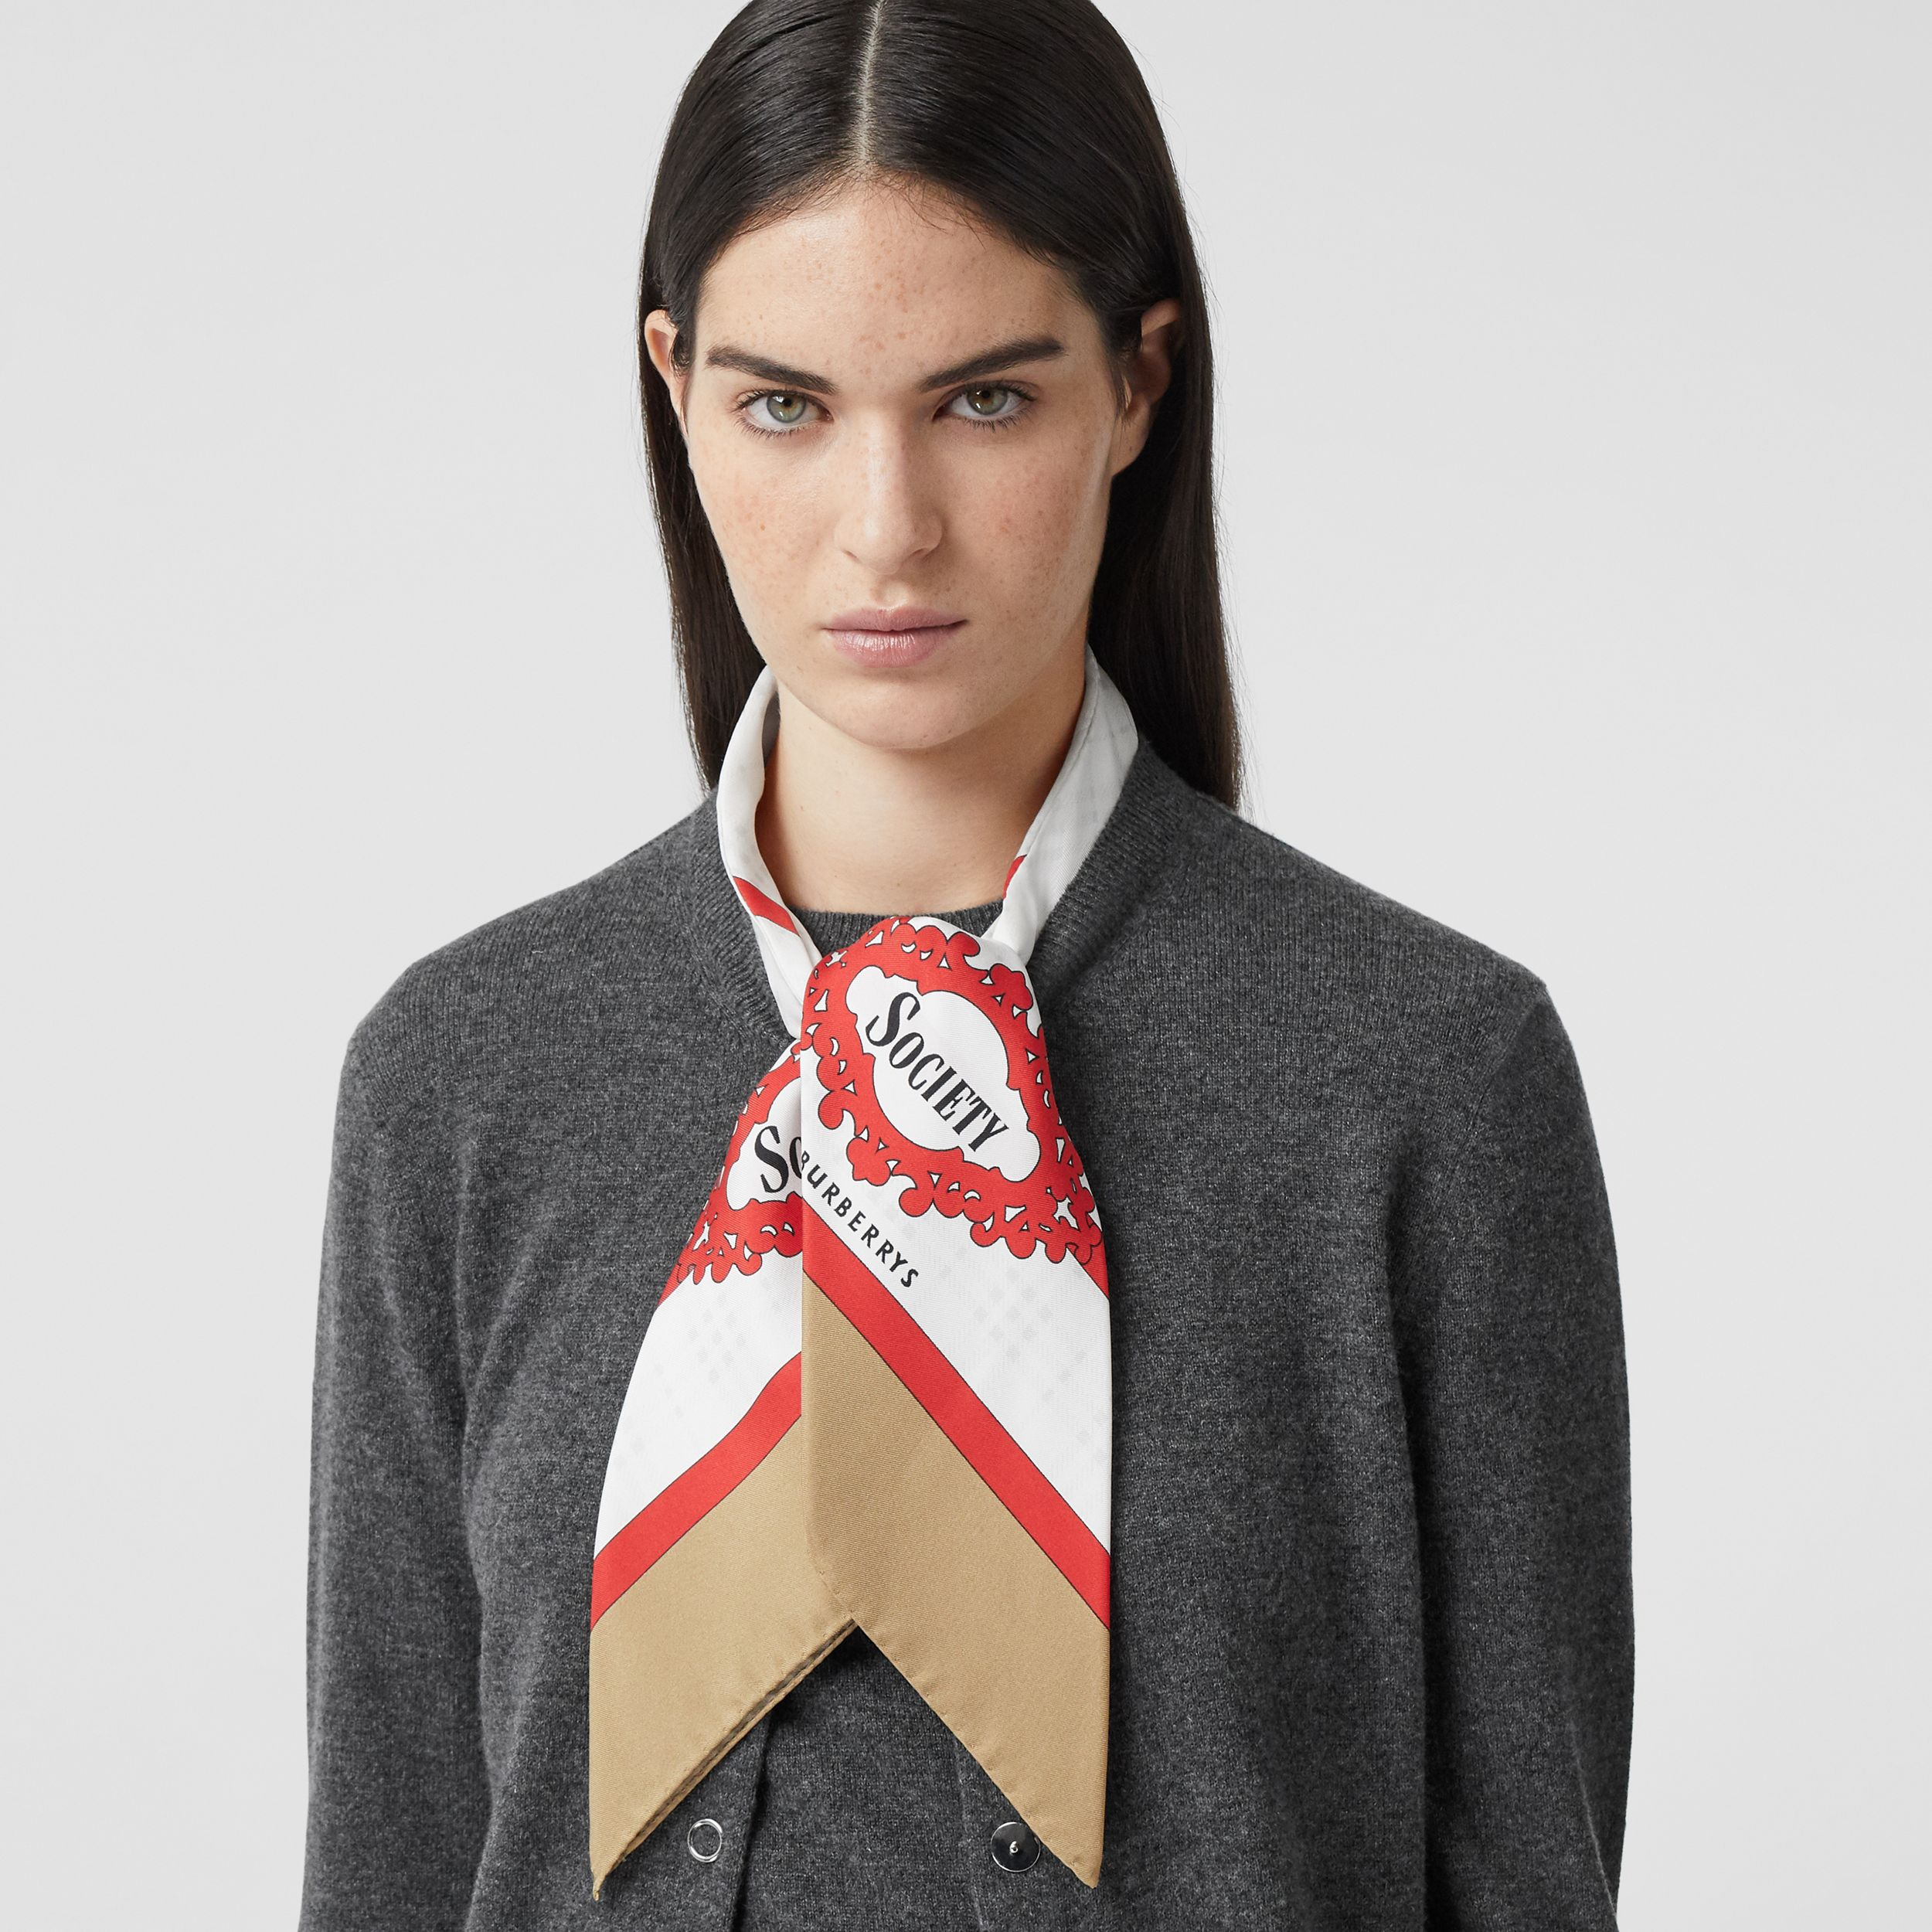 Silk Scarf Detail Cashmere Cardigan in Grey Melange - Women | Burberry - 2